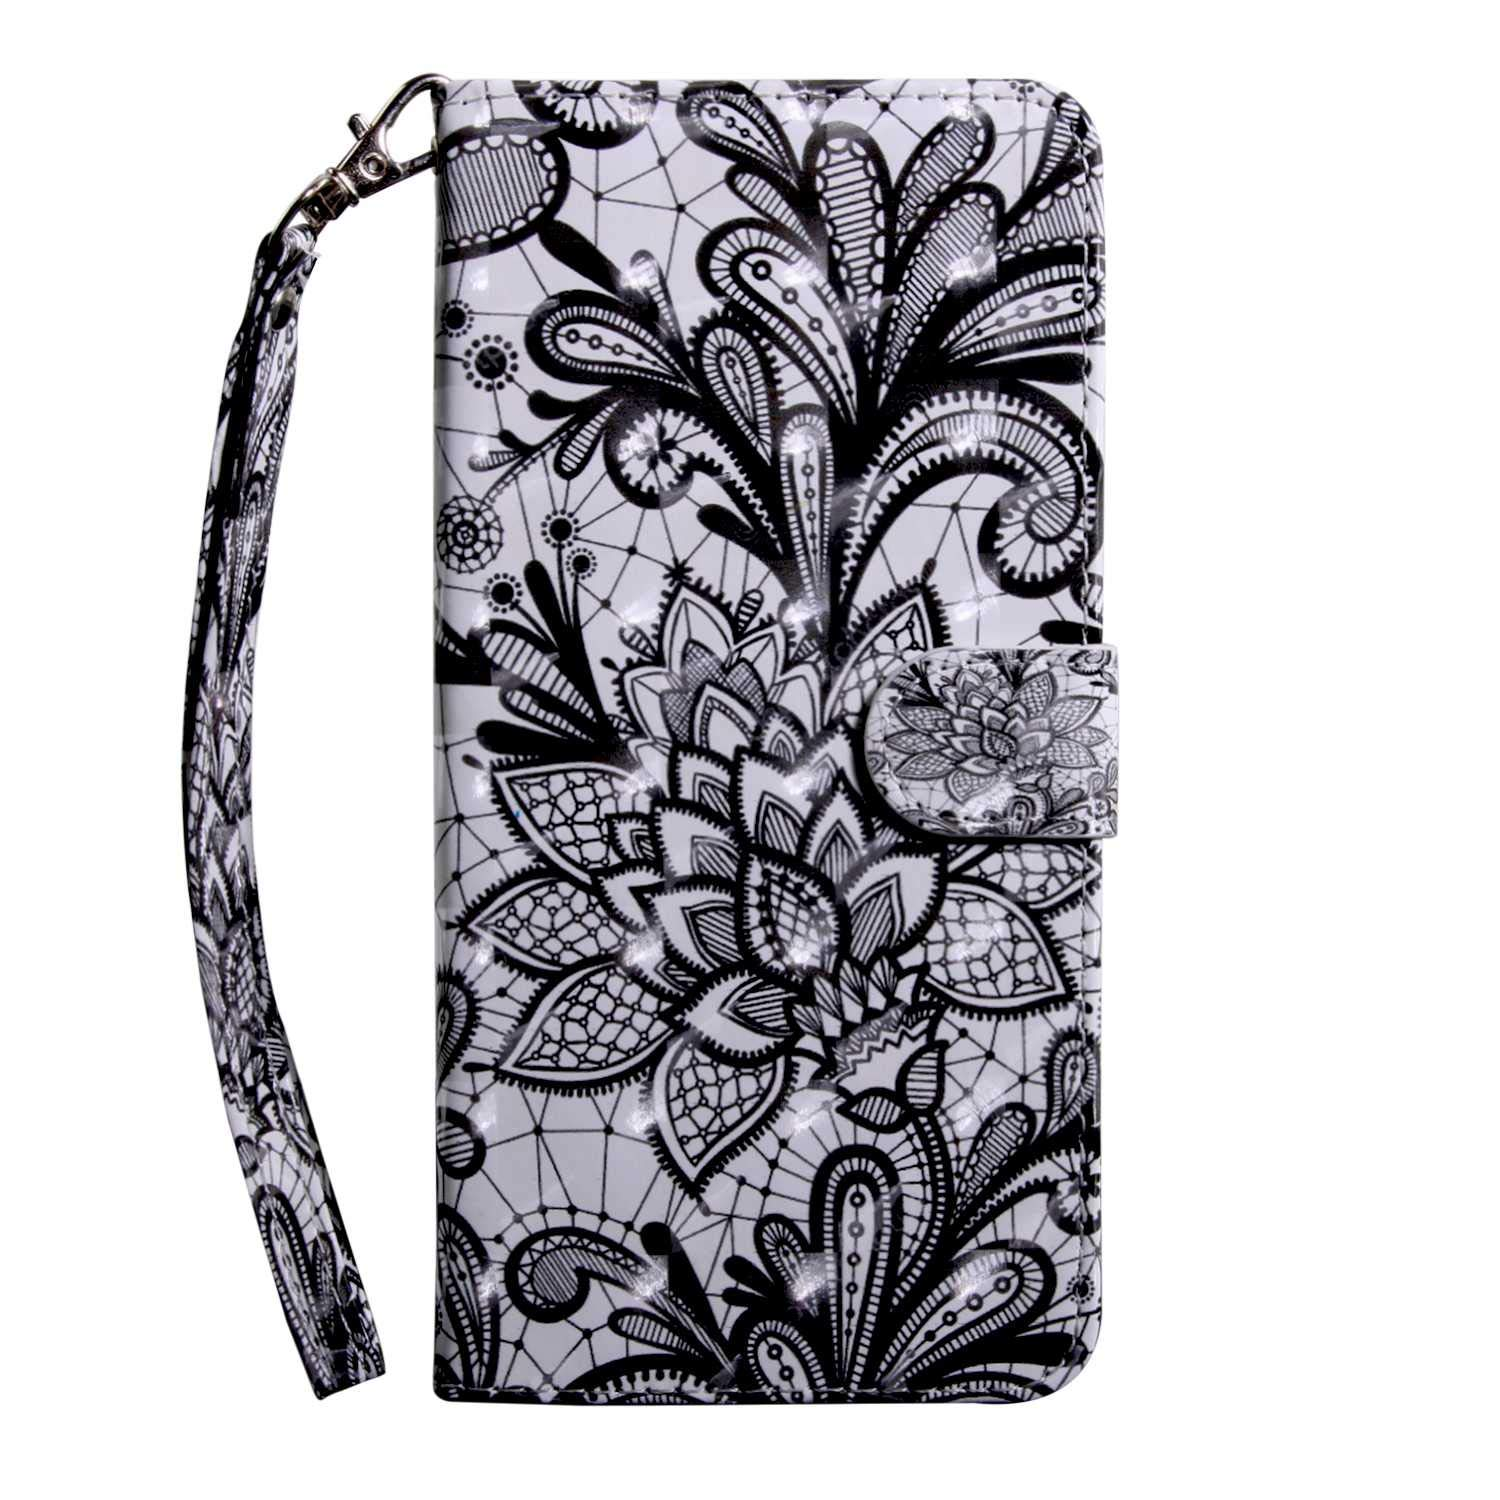 Xiaomi MI 5X Case CUSKING Magnetic Wallet Case for Xiaomi MI 5X [Card Slot] [Hand Strap] [Flip Case] [Easy to Clean] Full Body Proective Case - Lace